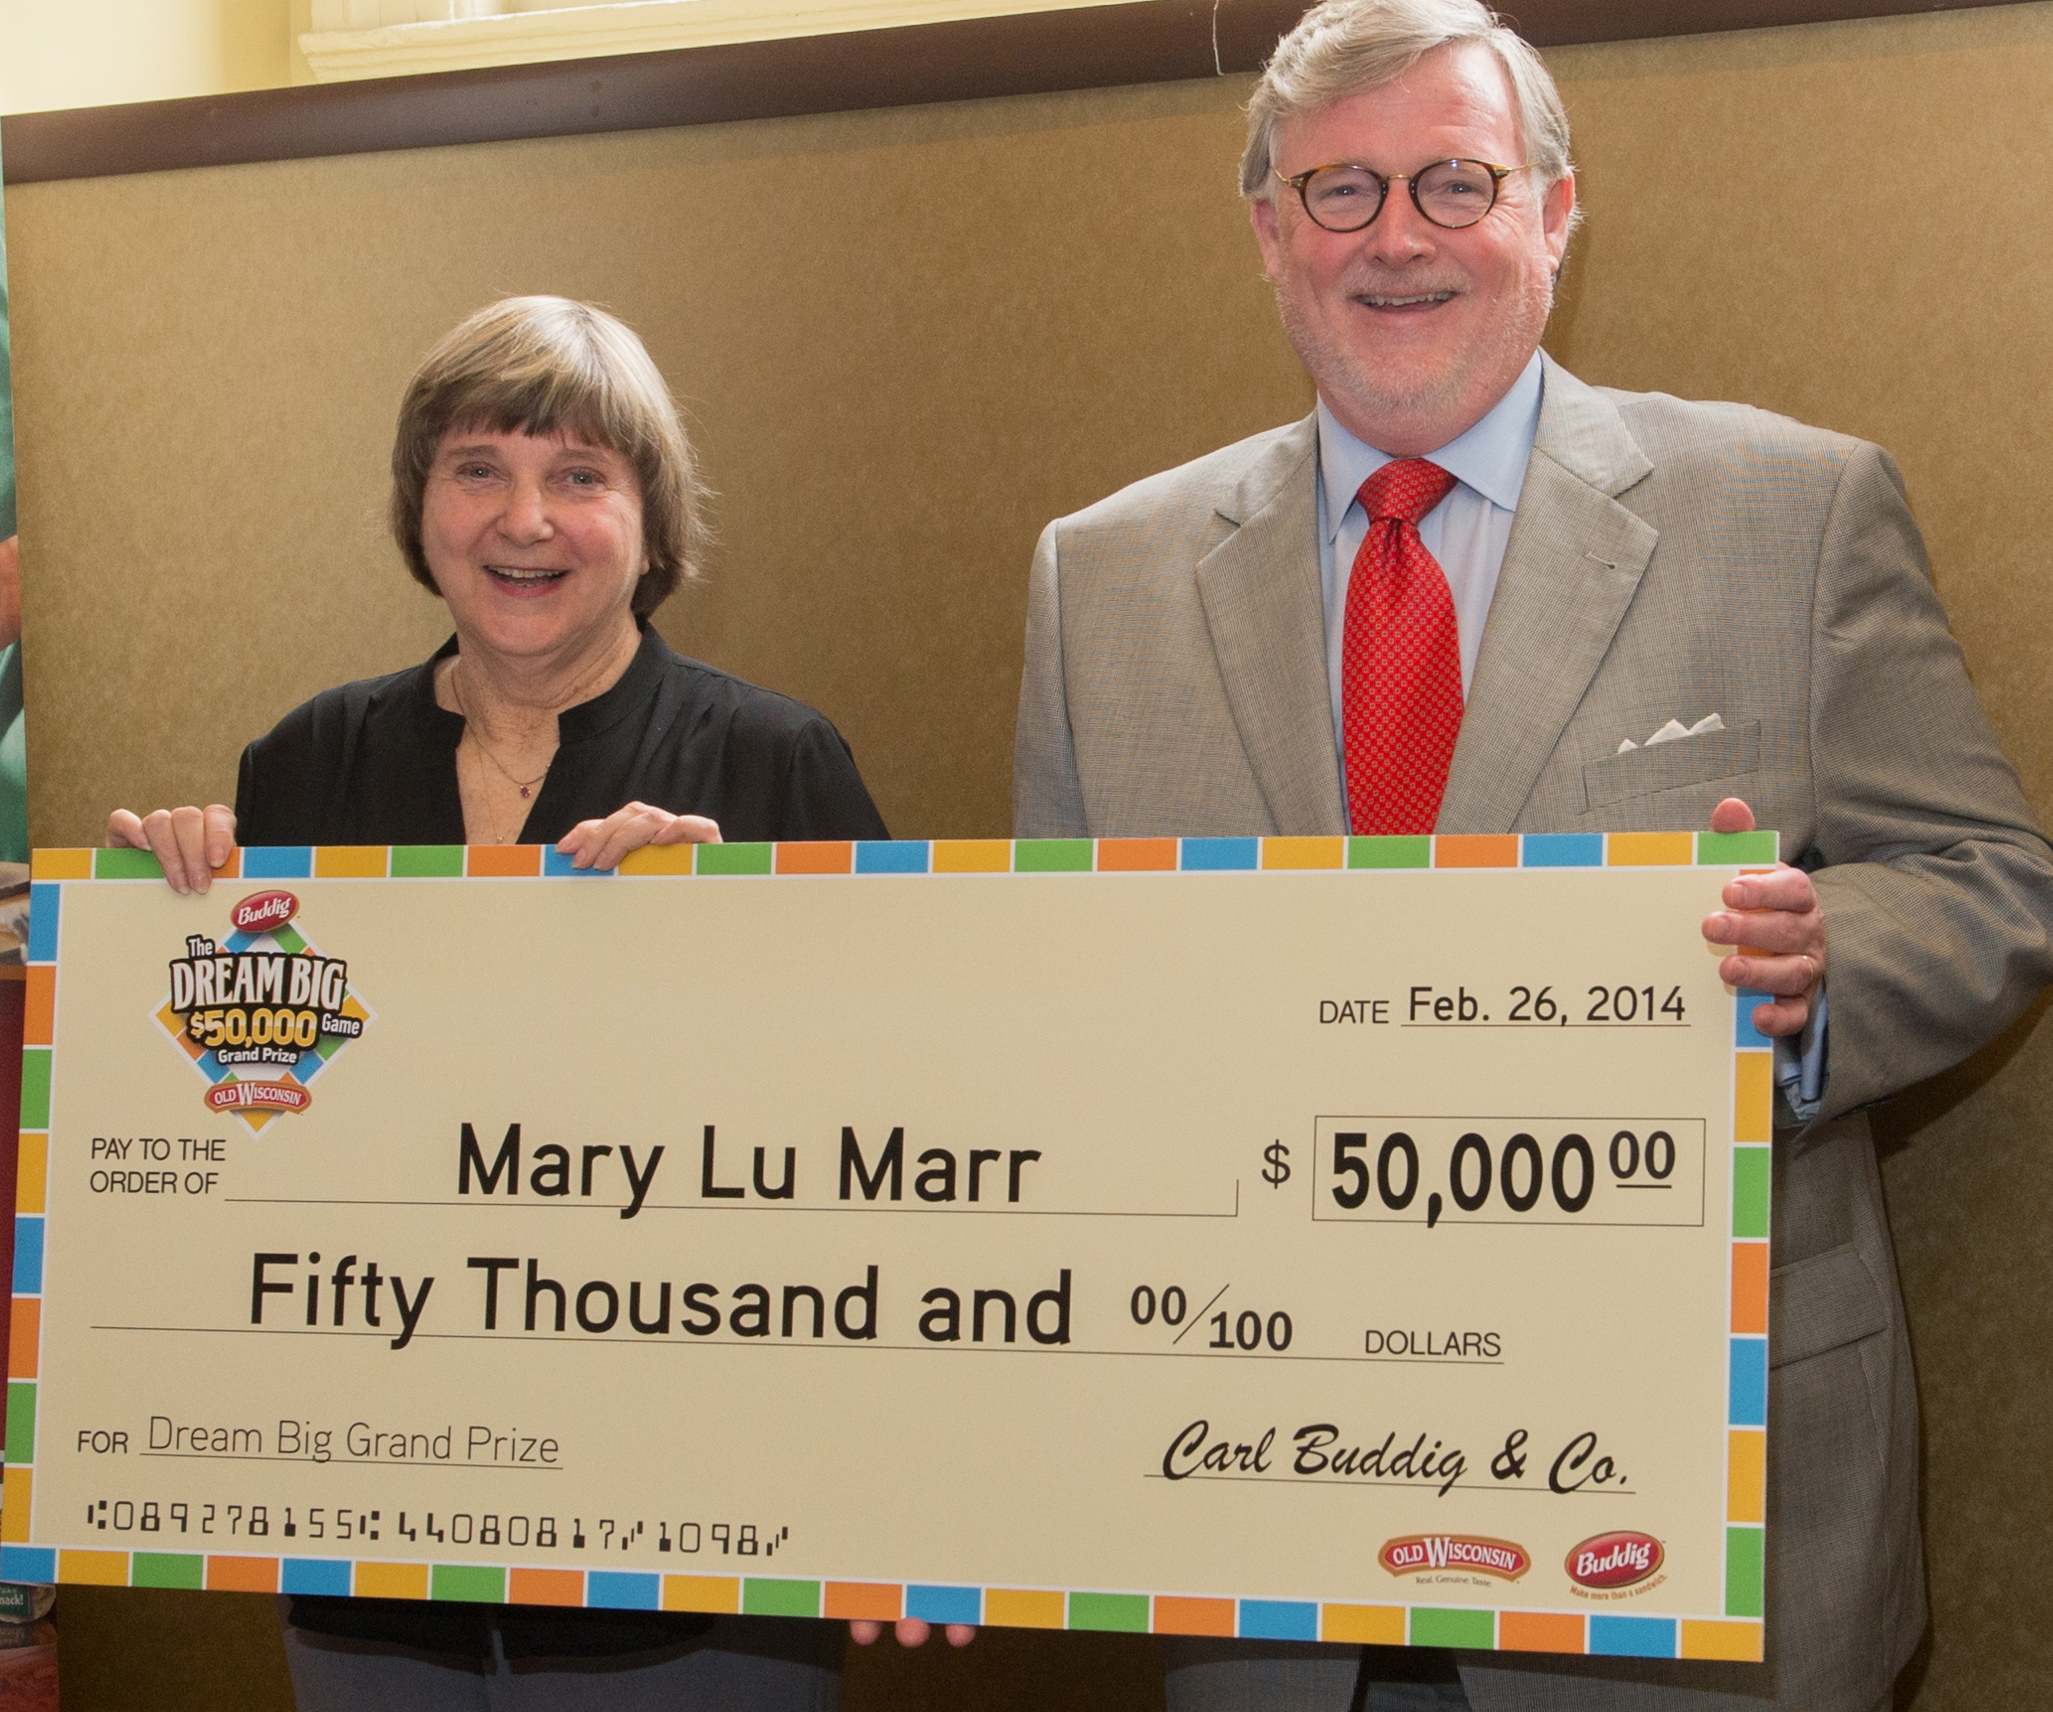 carl buddig awards $50,000 grand prize in dream big giveaway, Powerpoint templates